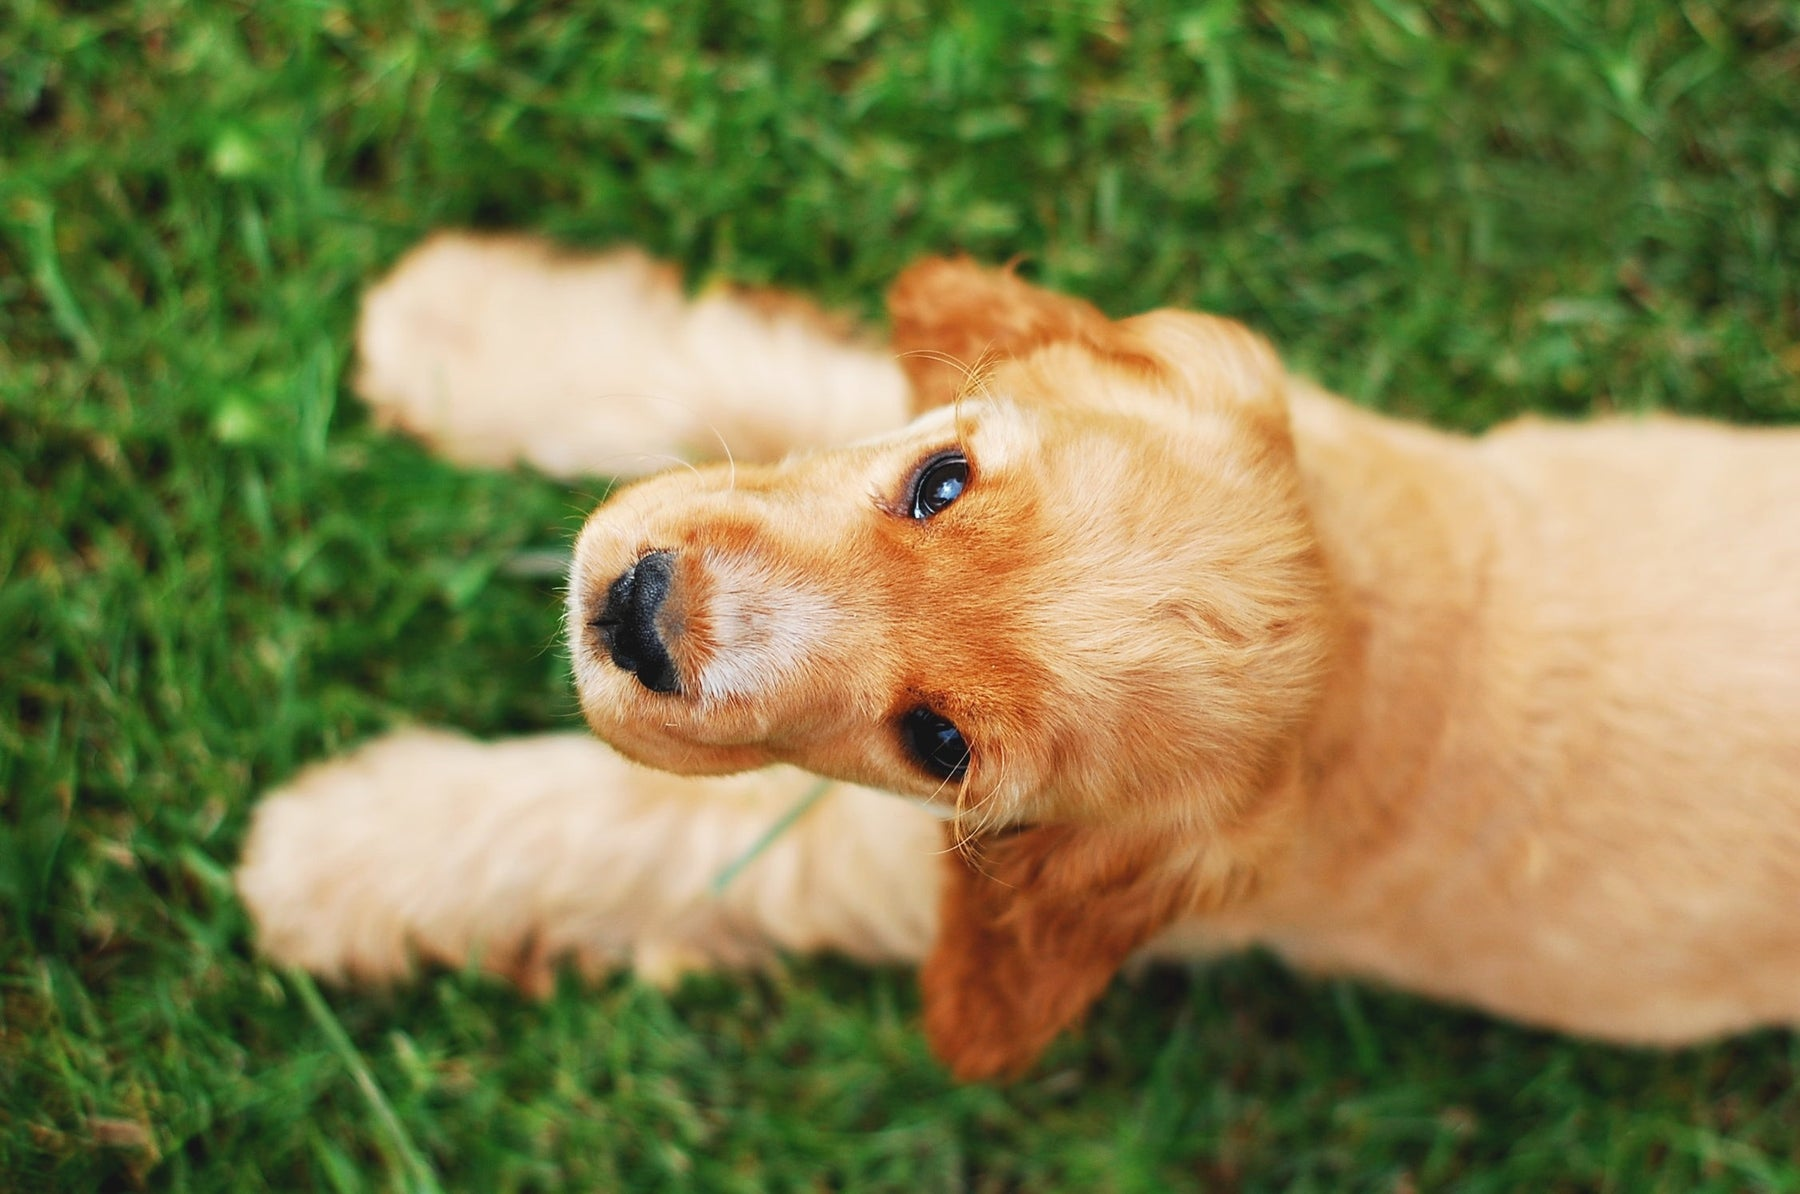 5 Easy Ways to Teach Your Dog Impulse Control